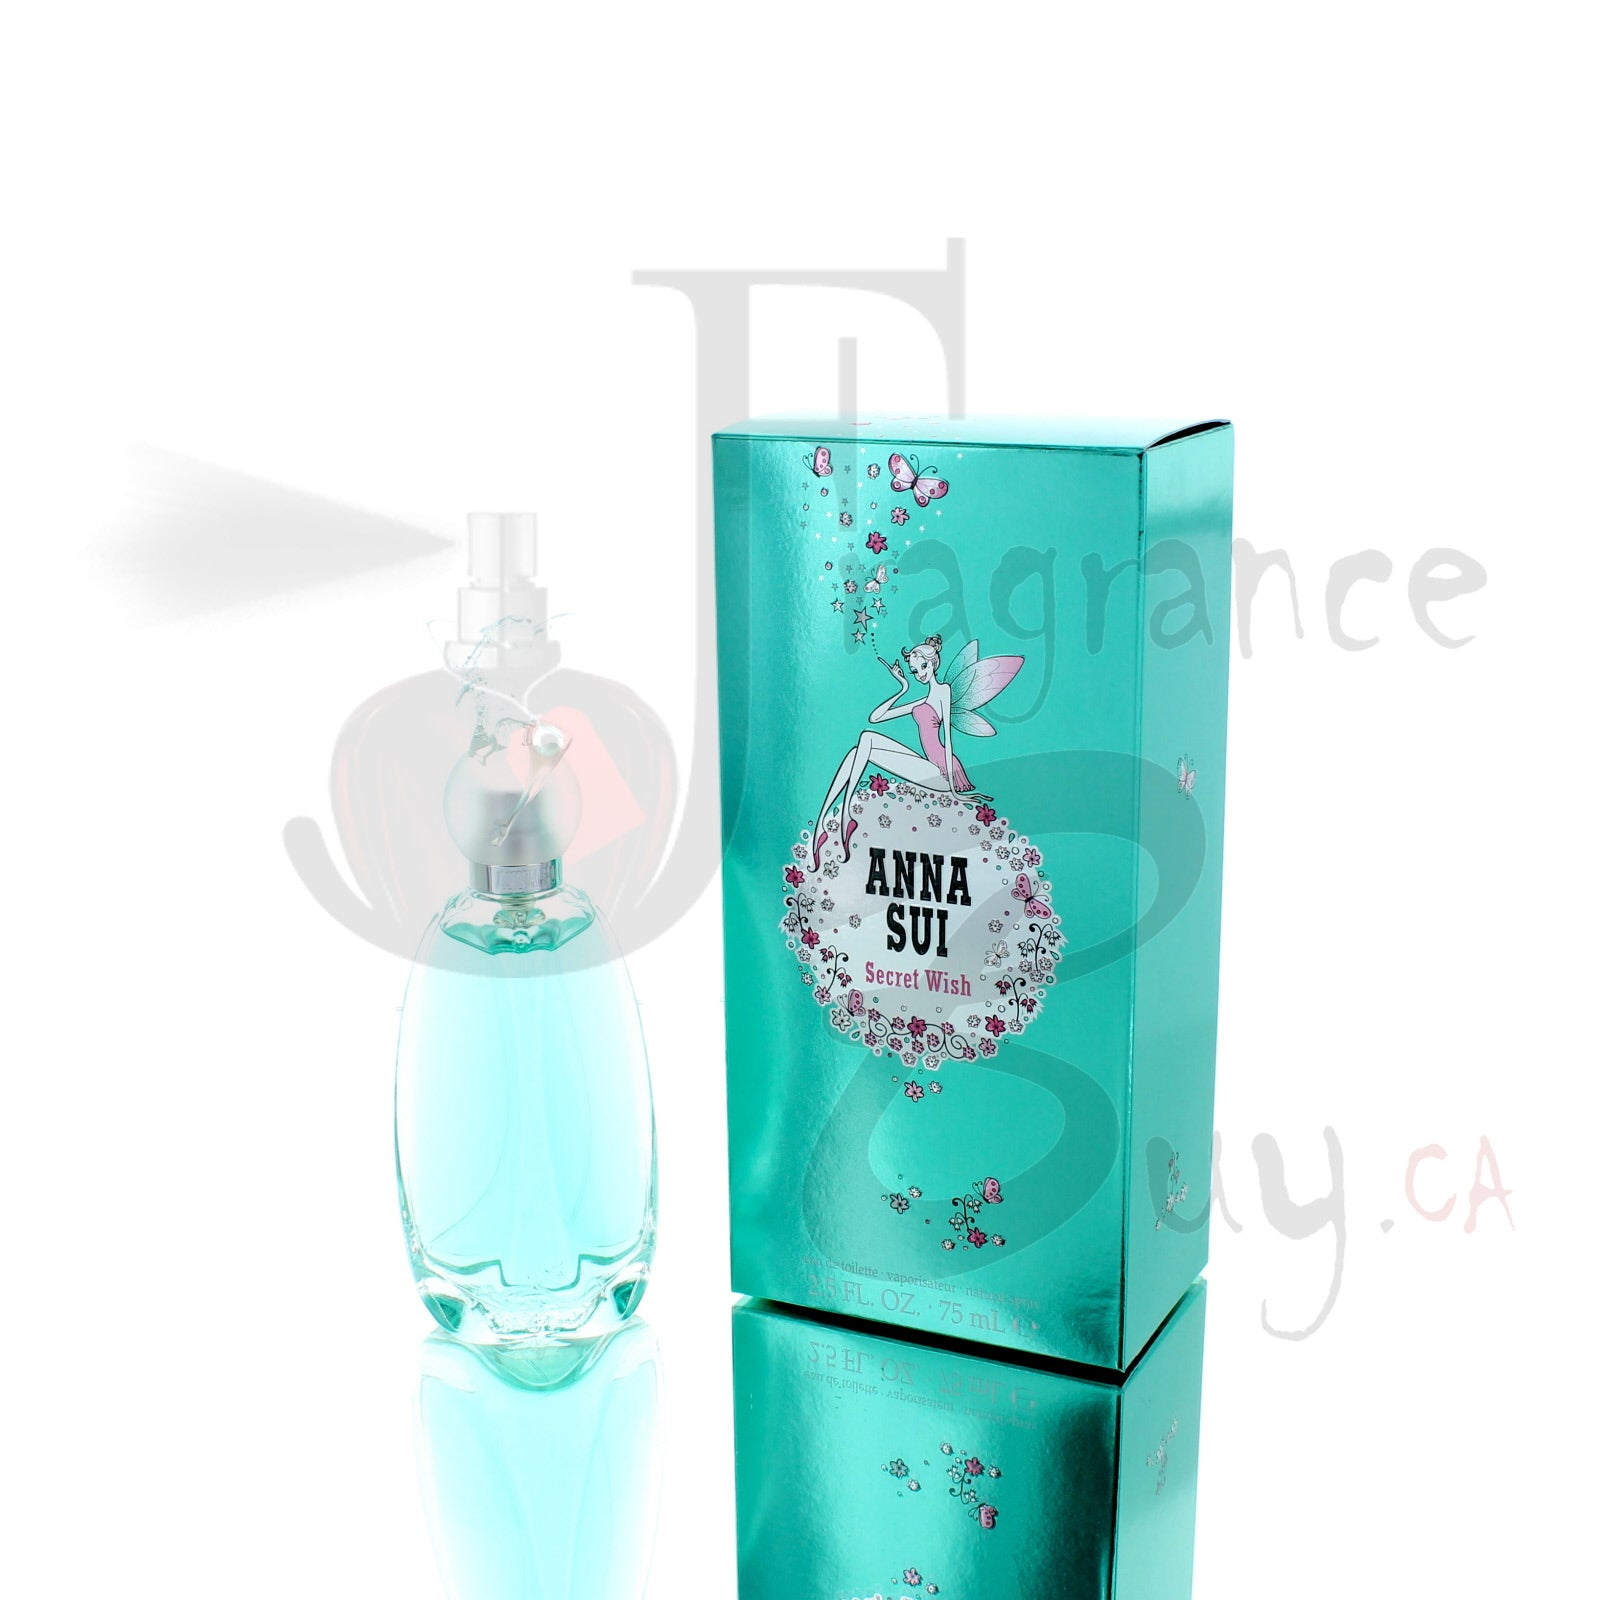 Anna Sui Secret Wish For Woman